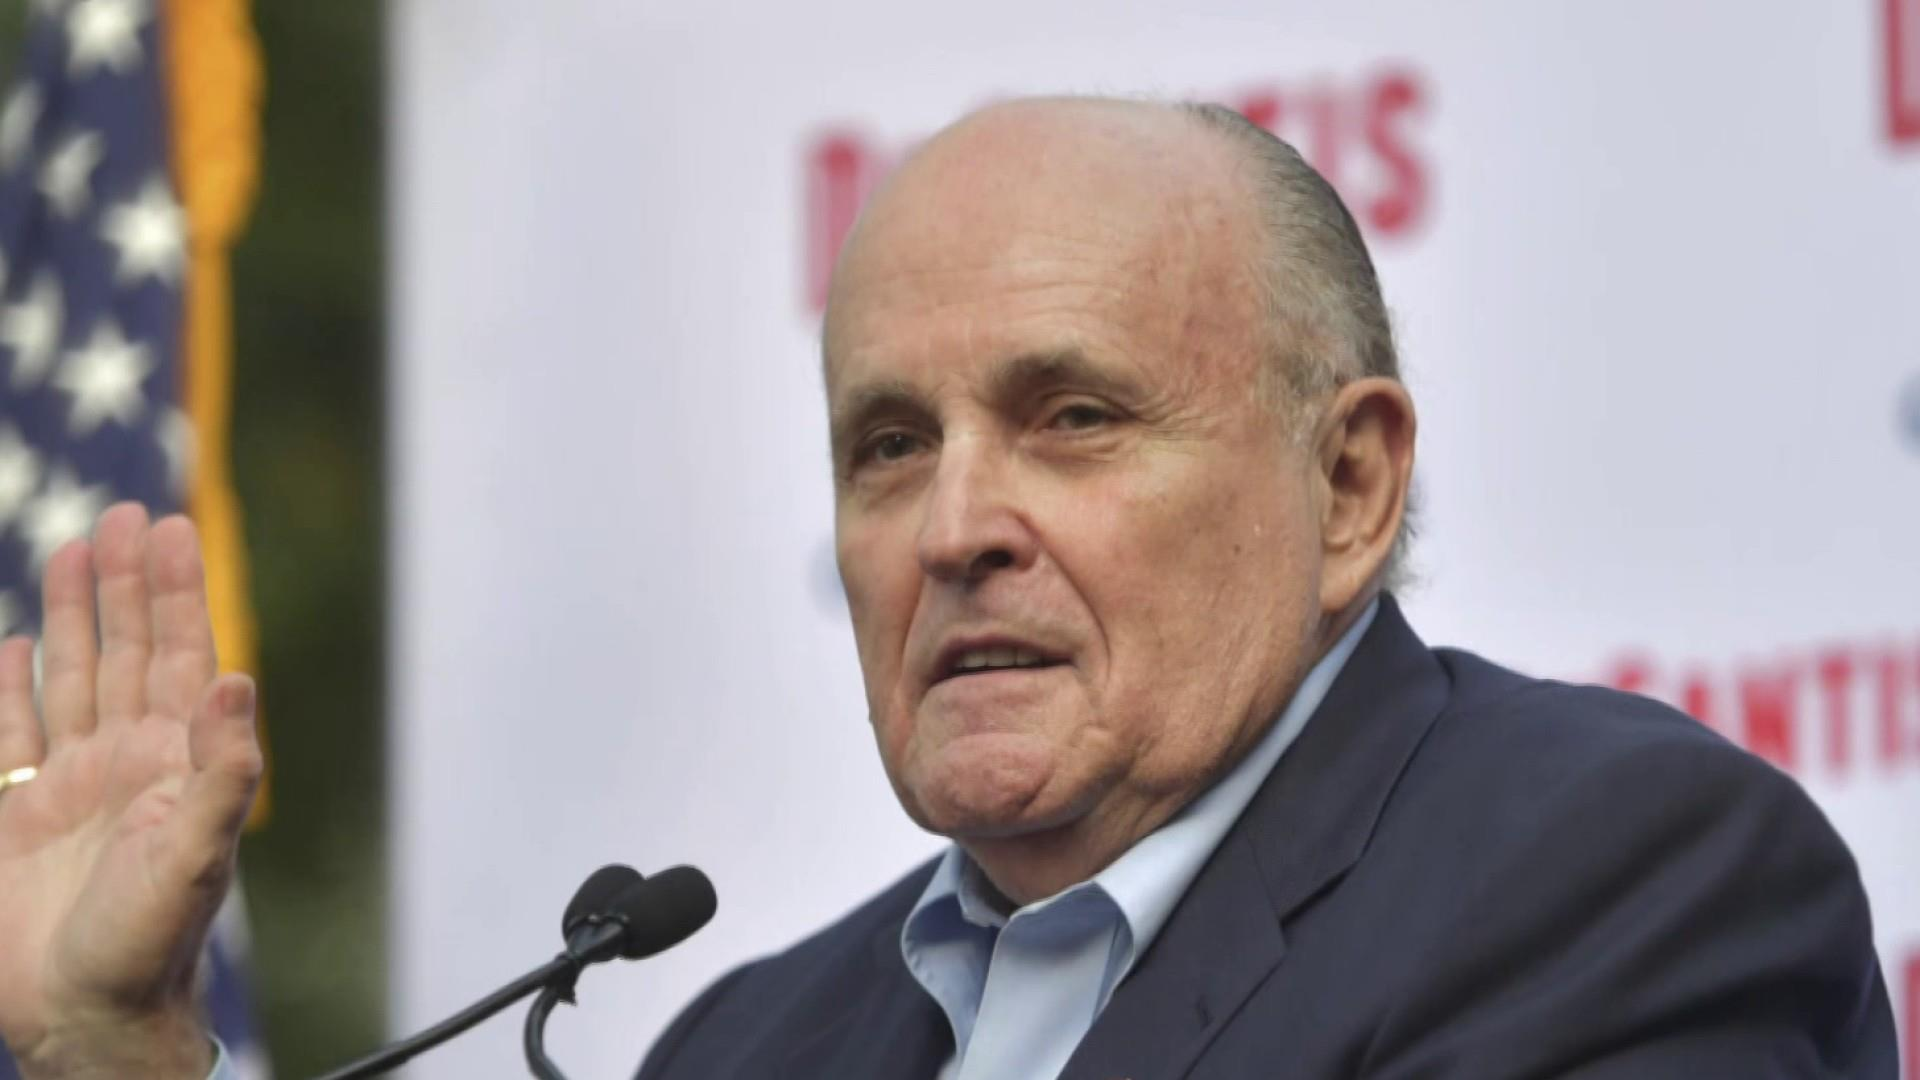 Rudy Giuliani pressed Trump administration for visa for ousted Ukraine prosecutor